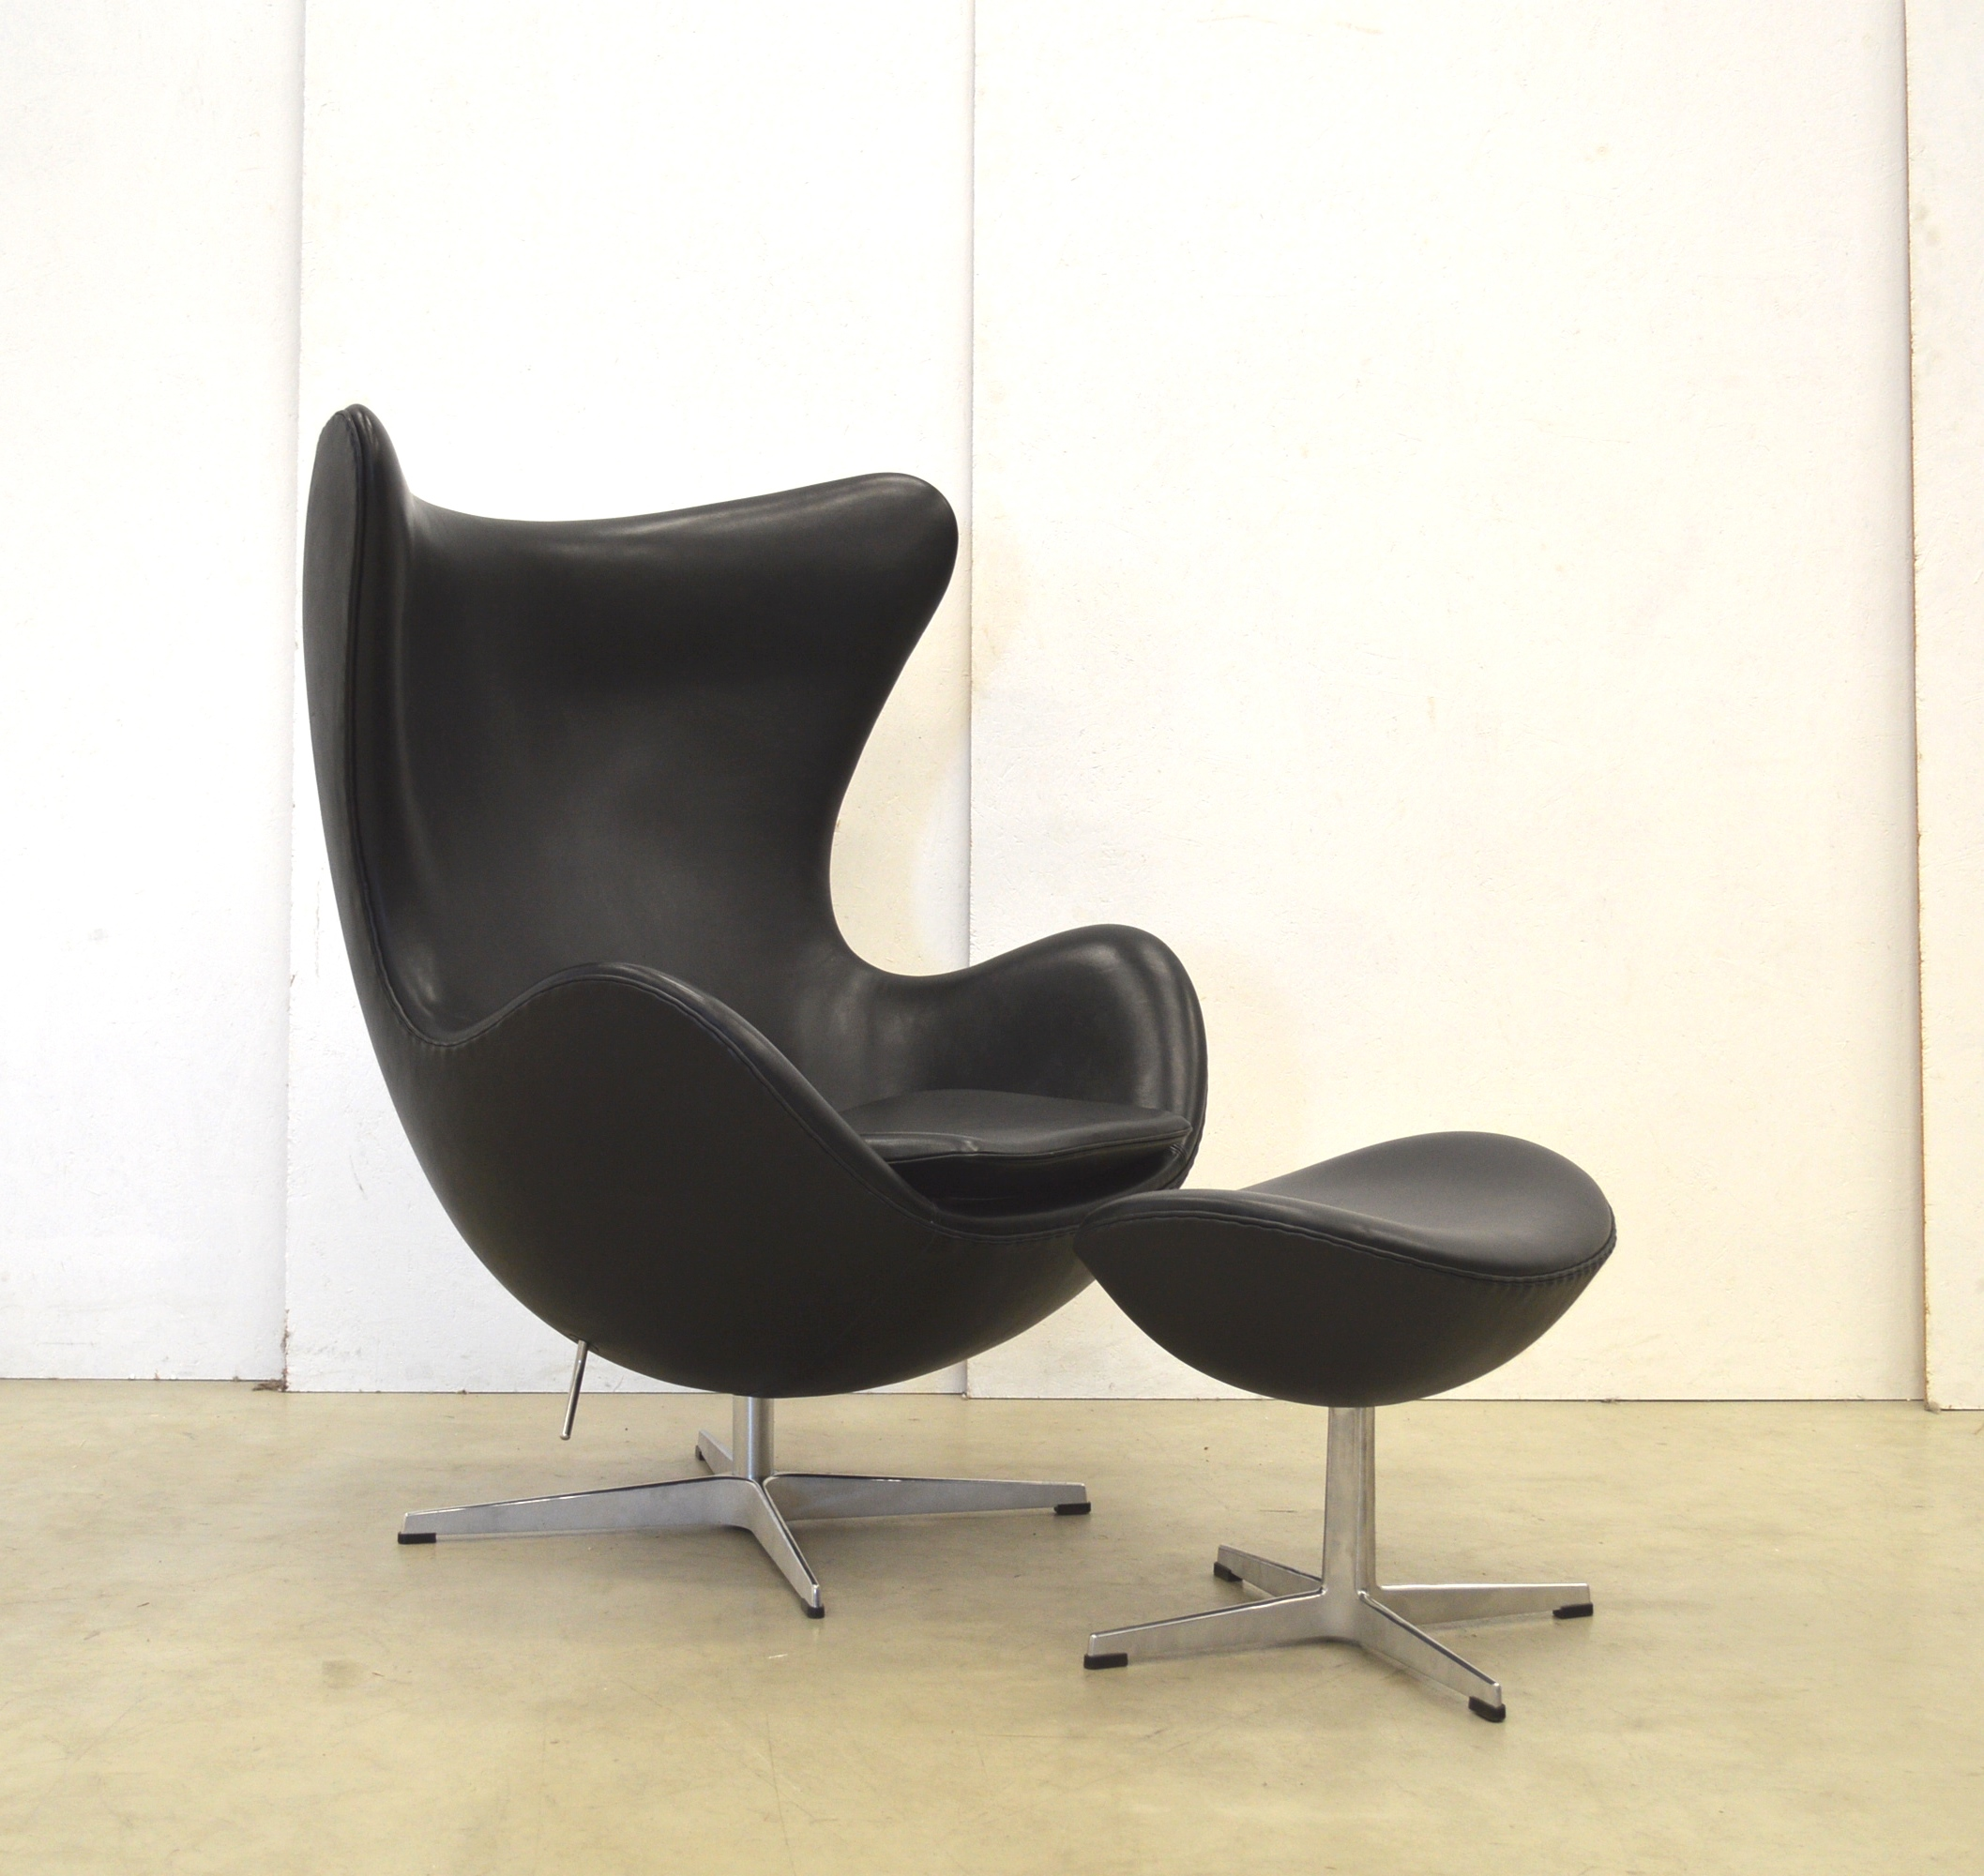 Arne Jacobsen Egg Chair By Fritz Hansen Black Leather Interior Aksel